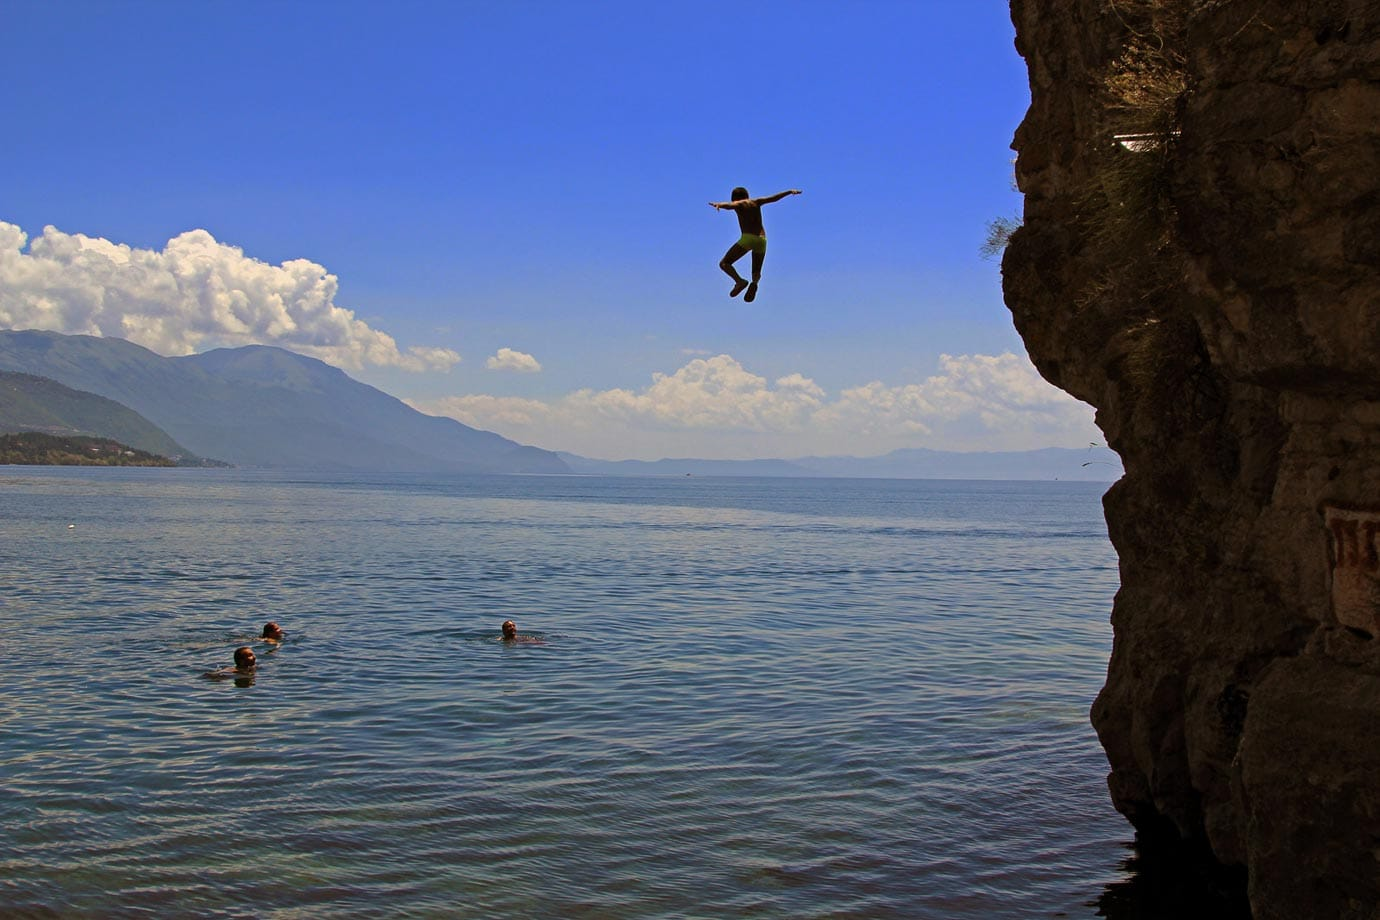 A young boy cliff jumping at Kaneo Beach